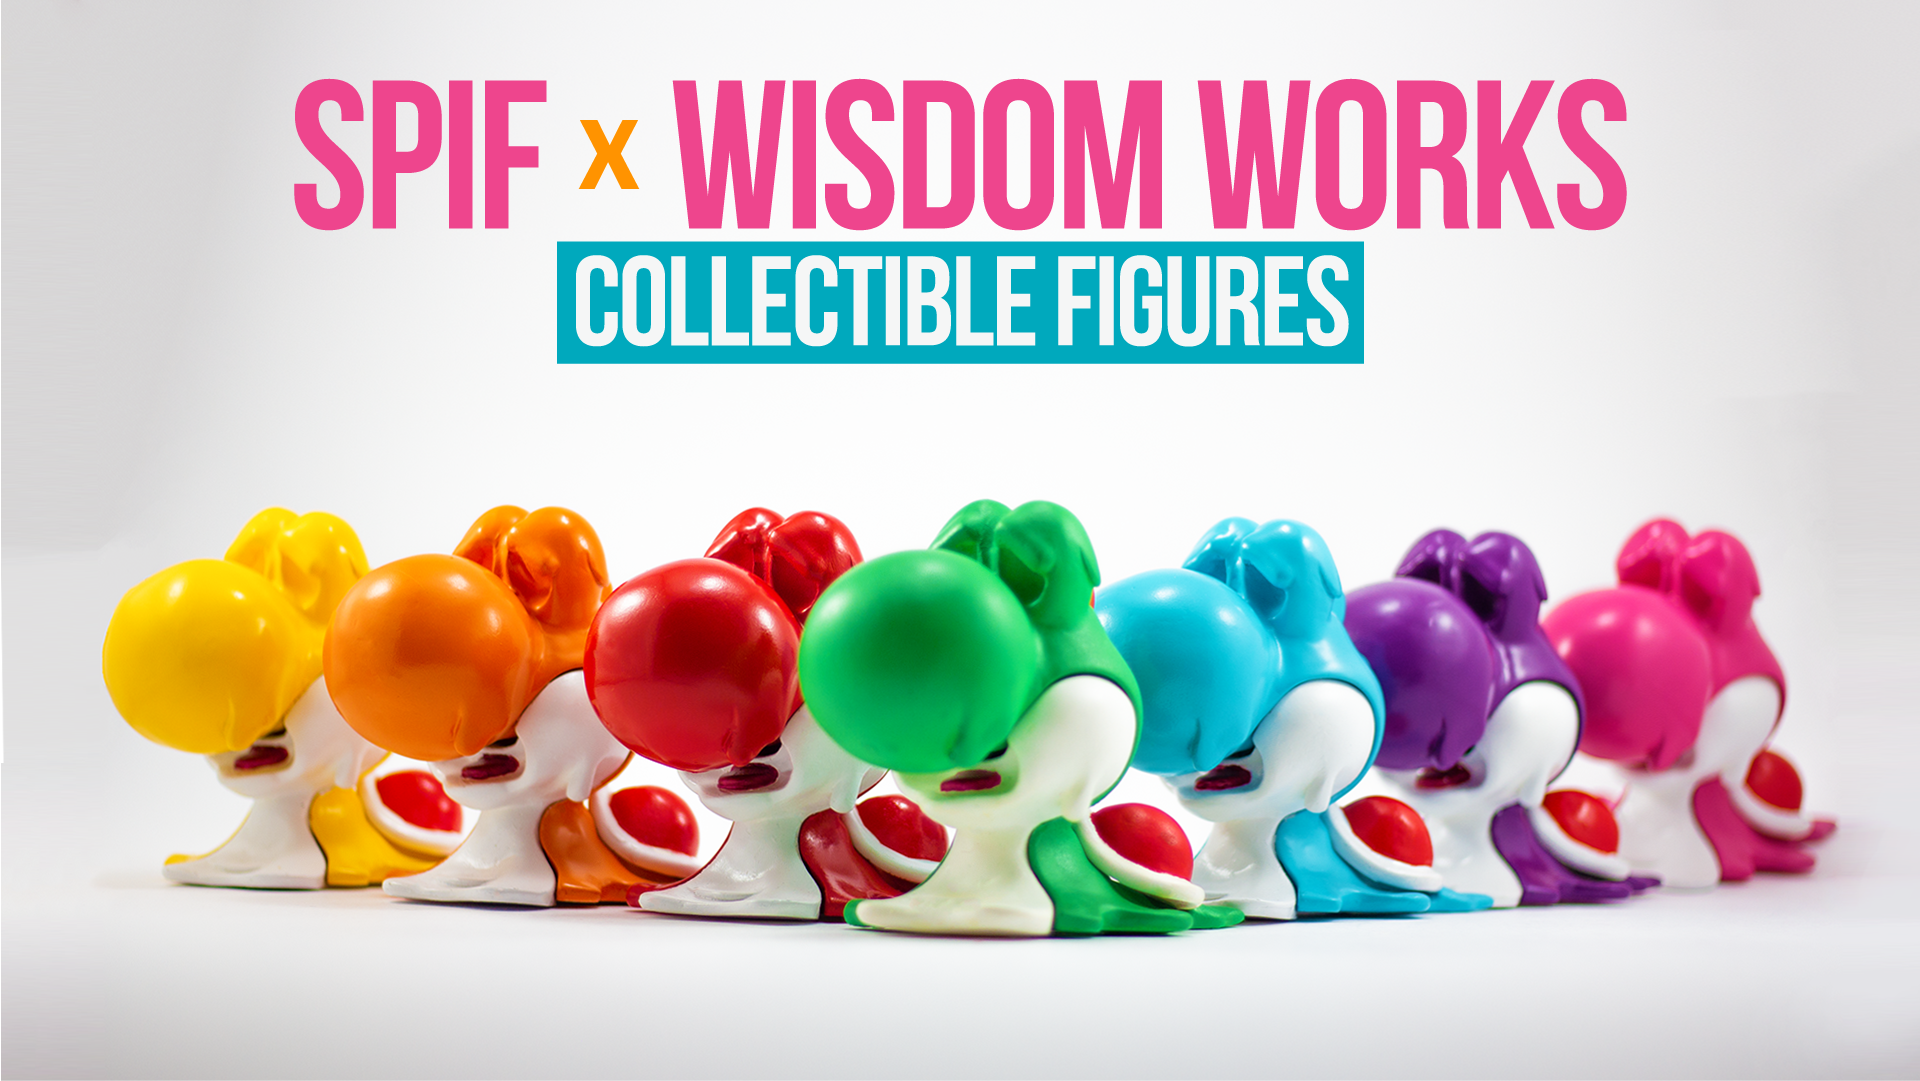 SPIF has been working behind the scenes learning the ins and outs of sculpting, mold-making, and casting. We're excited to announce that we've teamed up with a local brand, Wisdom Works, to bring you unique and exclusive collectible figurines. Each figure is hand-sculpted in house, molded, cast, and hand-painted. We've created a new page on our website to showcase our weird and funky designs, so please check it out! These collectibles are made-to-order (they're quite expensive to produce), so please allow 4-6 weeks to ship (though it'll probably arrive faster!) Check out some more images below.